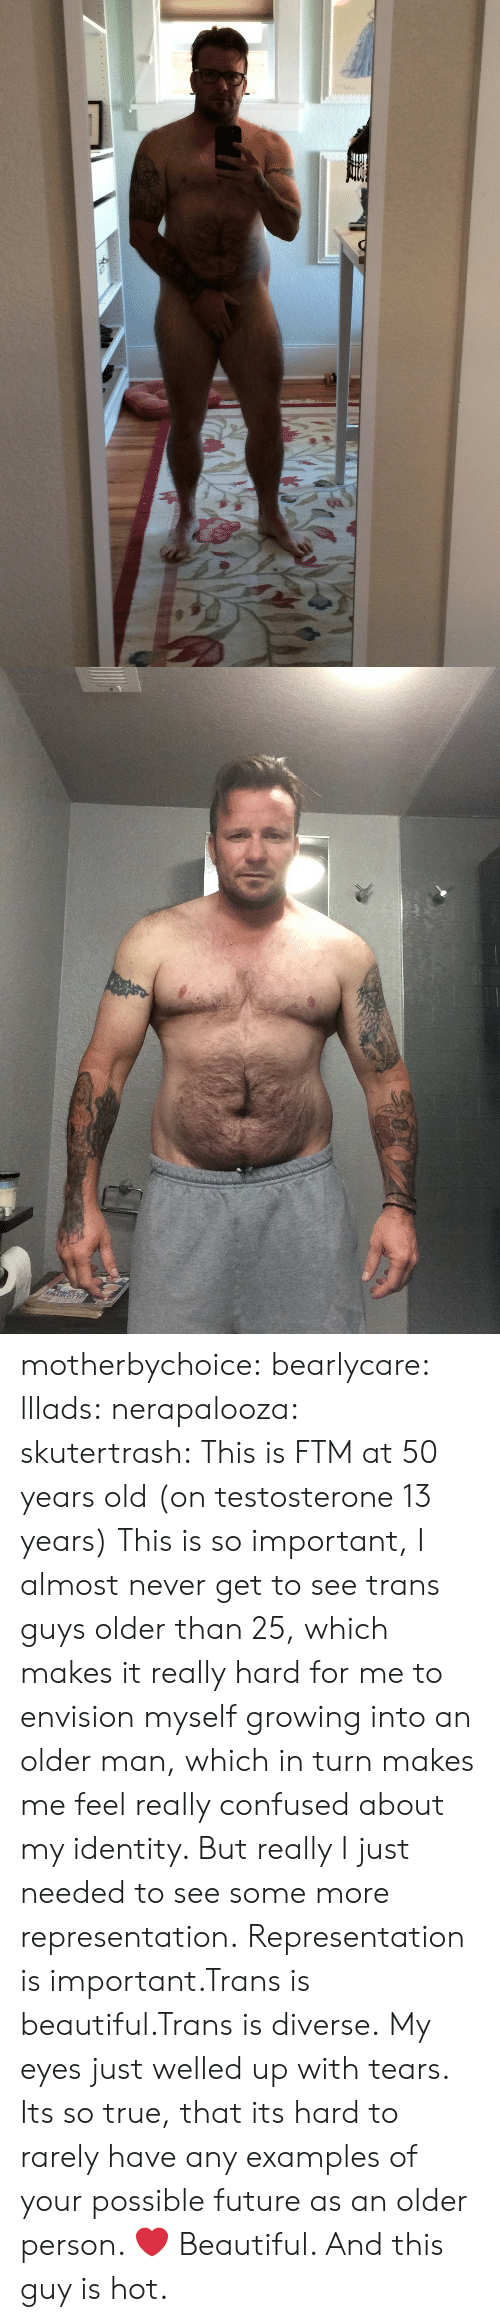 Beautiful, Confused, and Future: motherbychoice:  bearlycare:  lllads:  nerapalooza:  skutertrash:  This is FTM at 50 years old (on testosterone 13 years)  This is so important, I almost never get to see trans guys older than 25, which makes it really hard for me to envision myself growing into an older man, which in turn makes me feel really confused about my identity. But really I just needed to see some more representation.  Representation is important.Trans is beautiful.Trans is diverse.   My eyes just welled up with tears. Its so true, that its hard to rarely have any examples of your possible future as an older person.  ❤️  Beautiful. And this guy is hot.